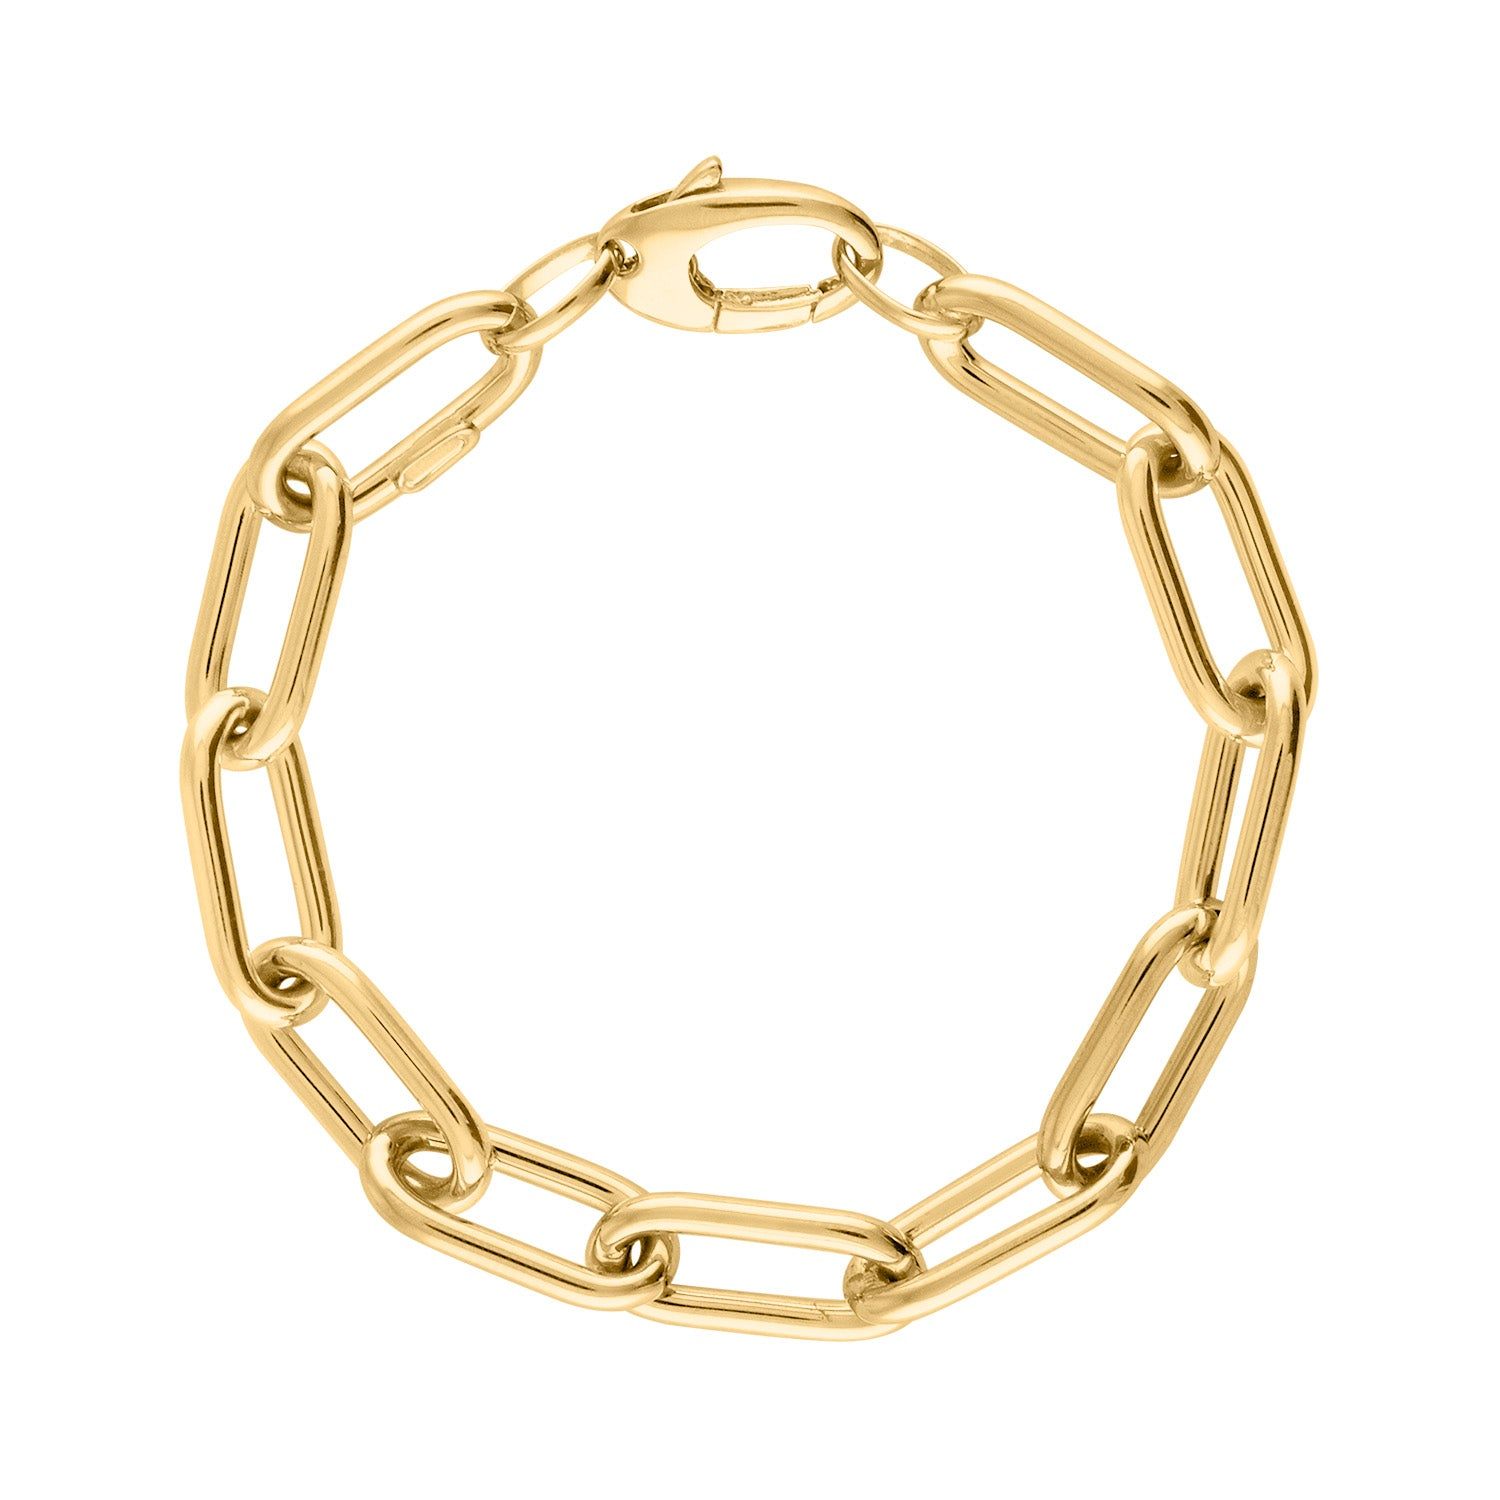 14KT GOLD LARGE THICK OVAL BRACELET